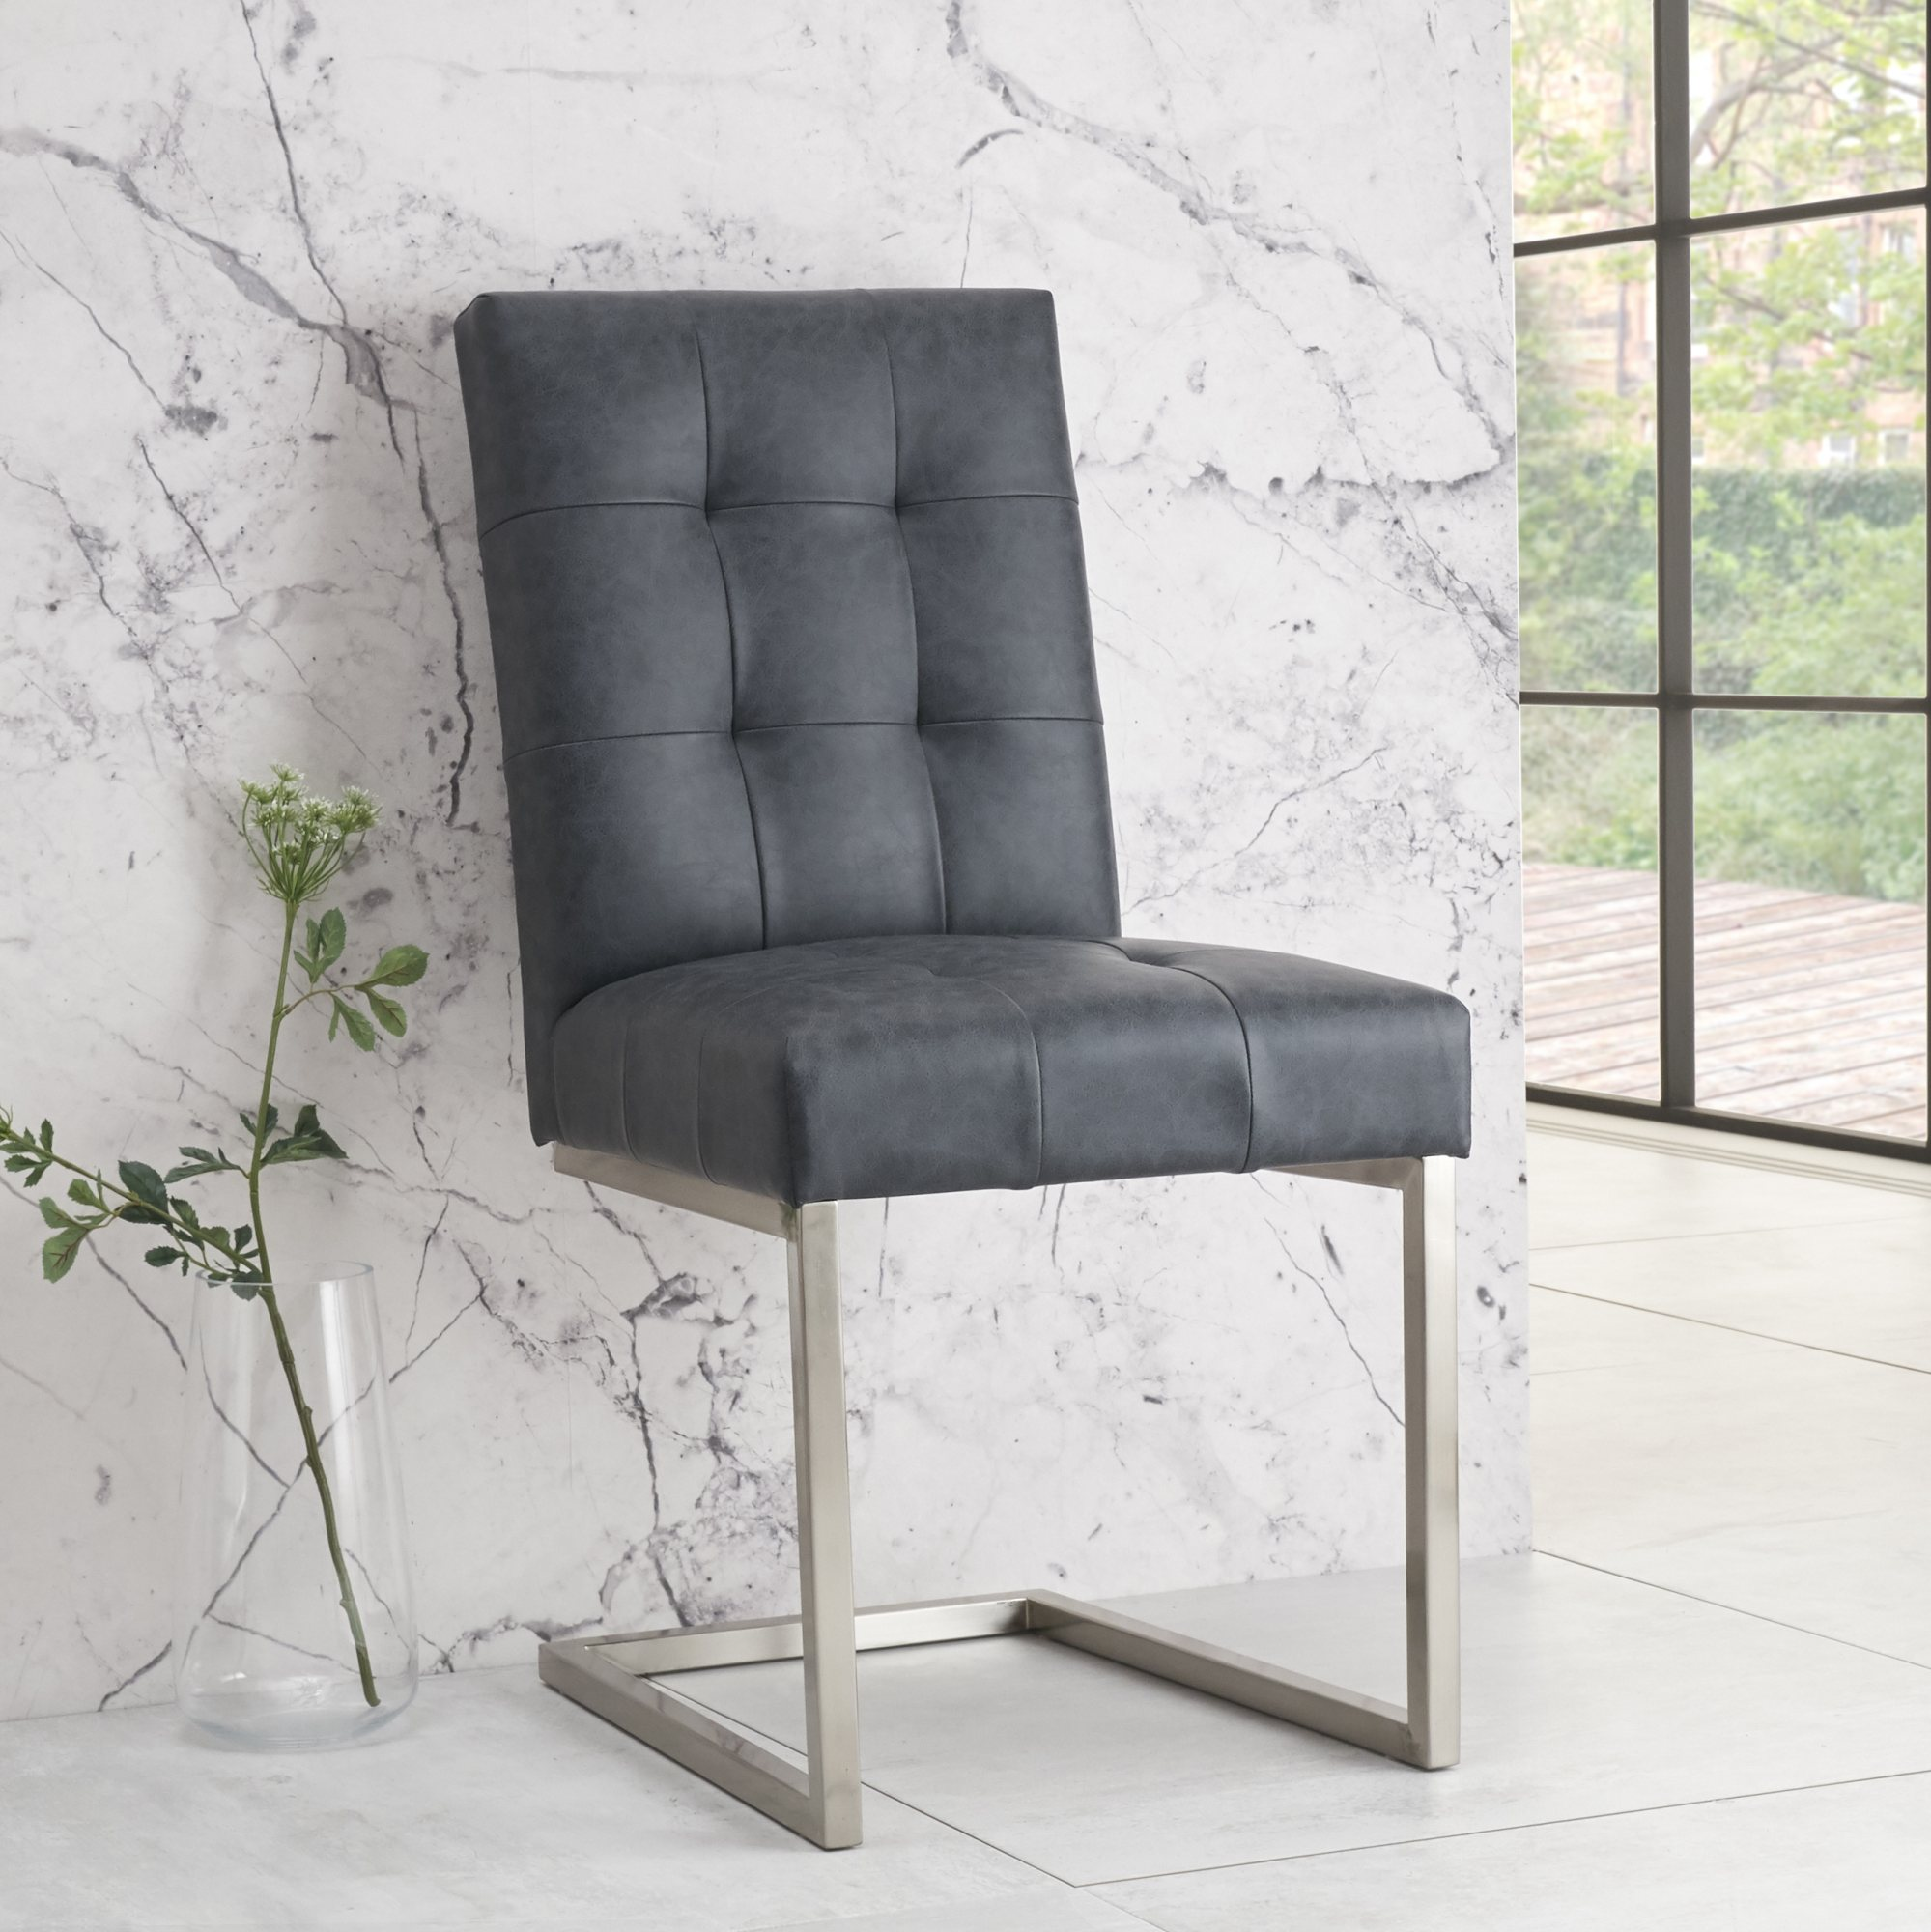 BRINDISI BONDED LEATHER DINING CHAIRDIMENSIONS – L54.5cm x D60cm x H85.5cm